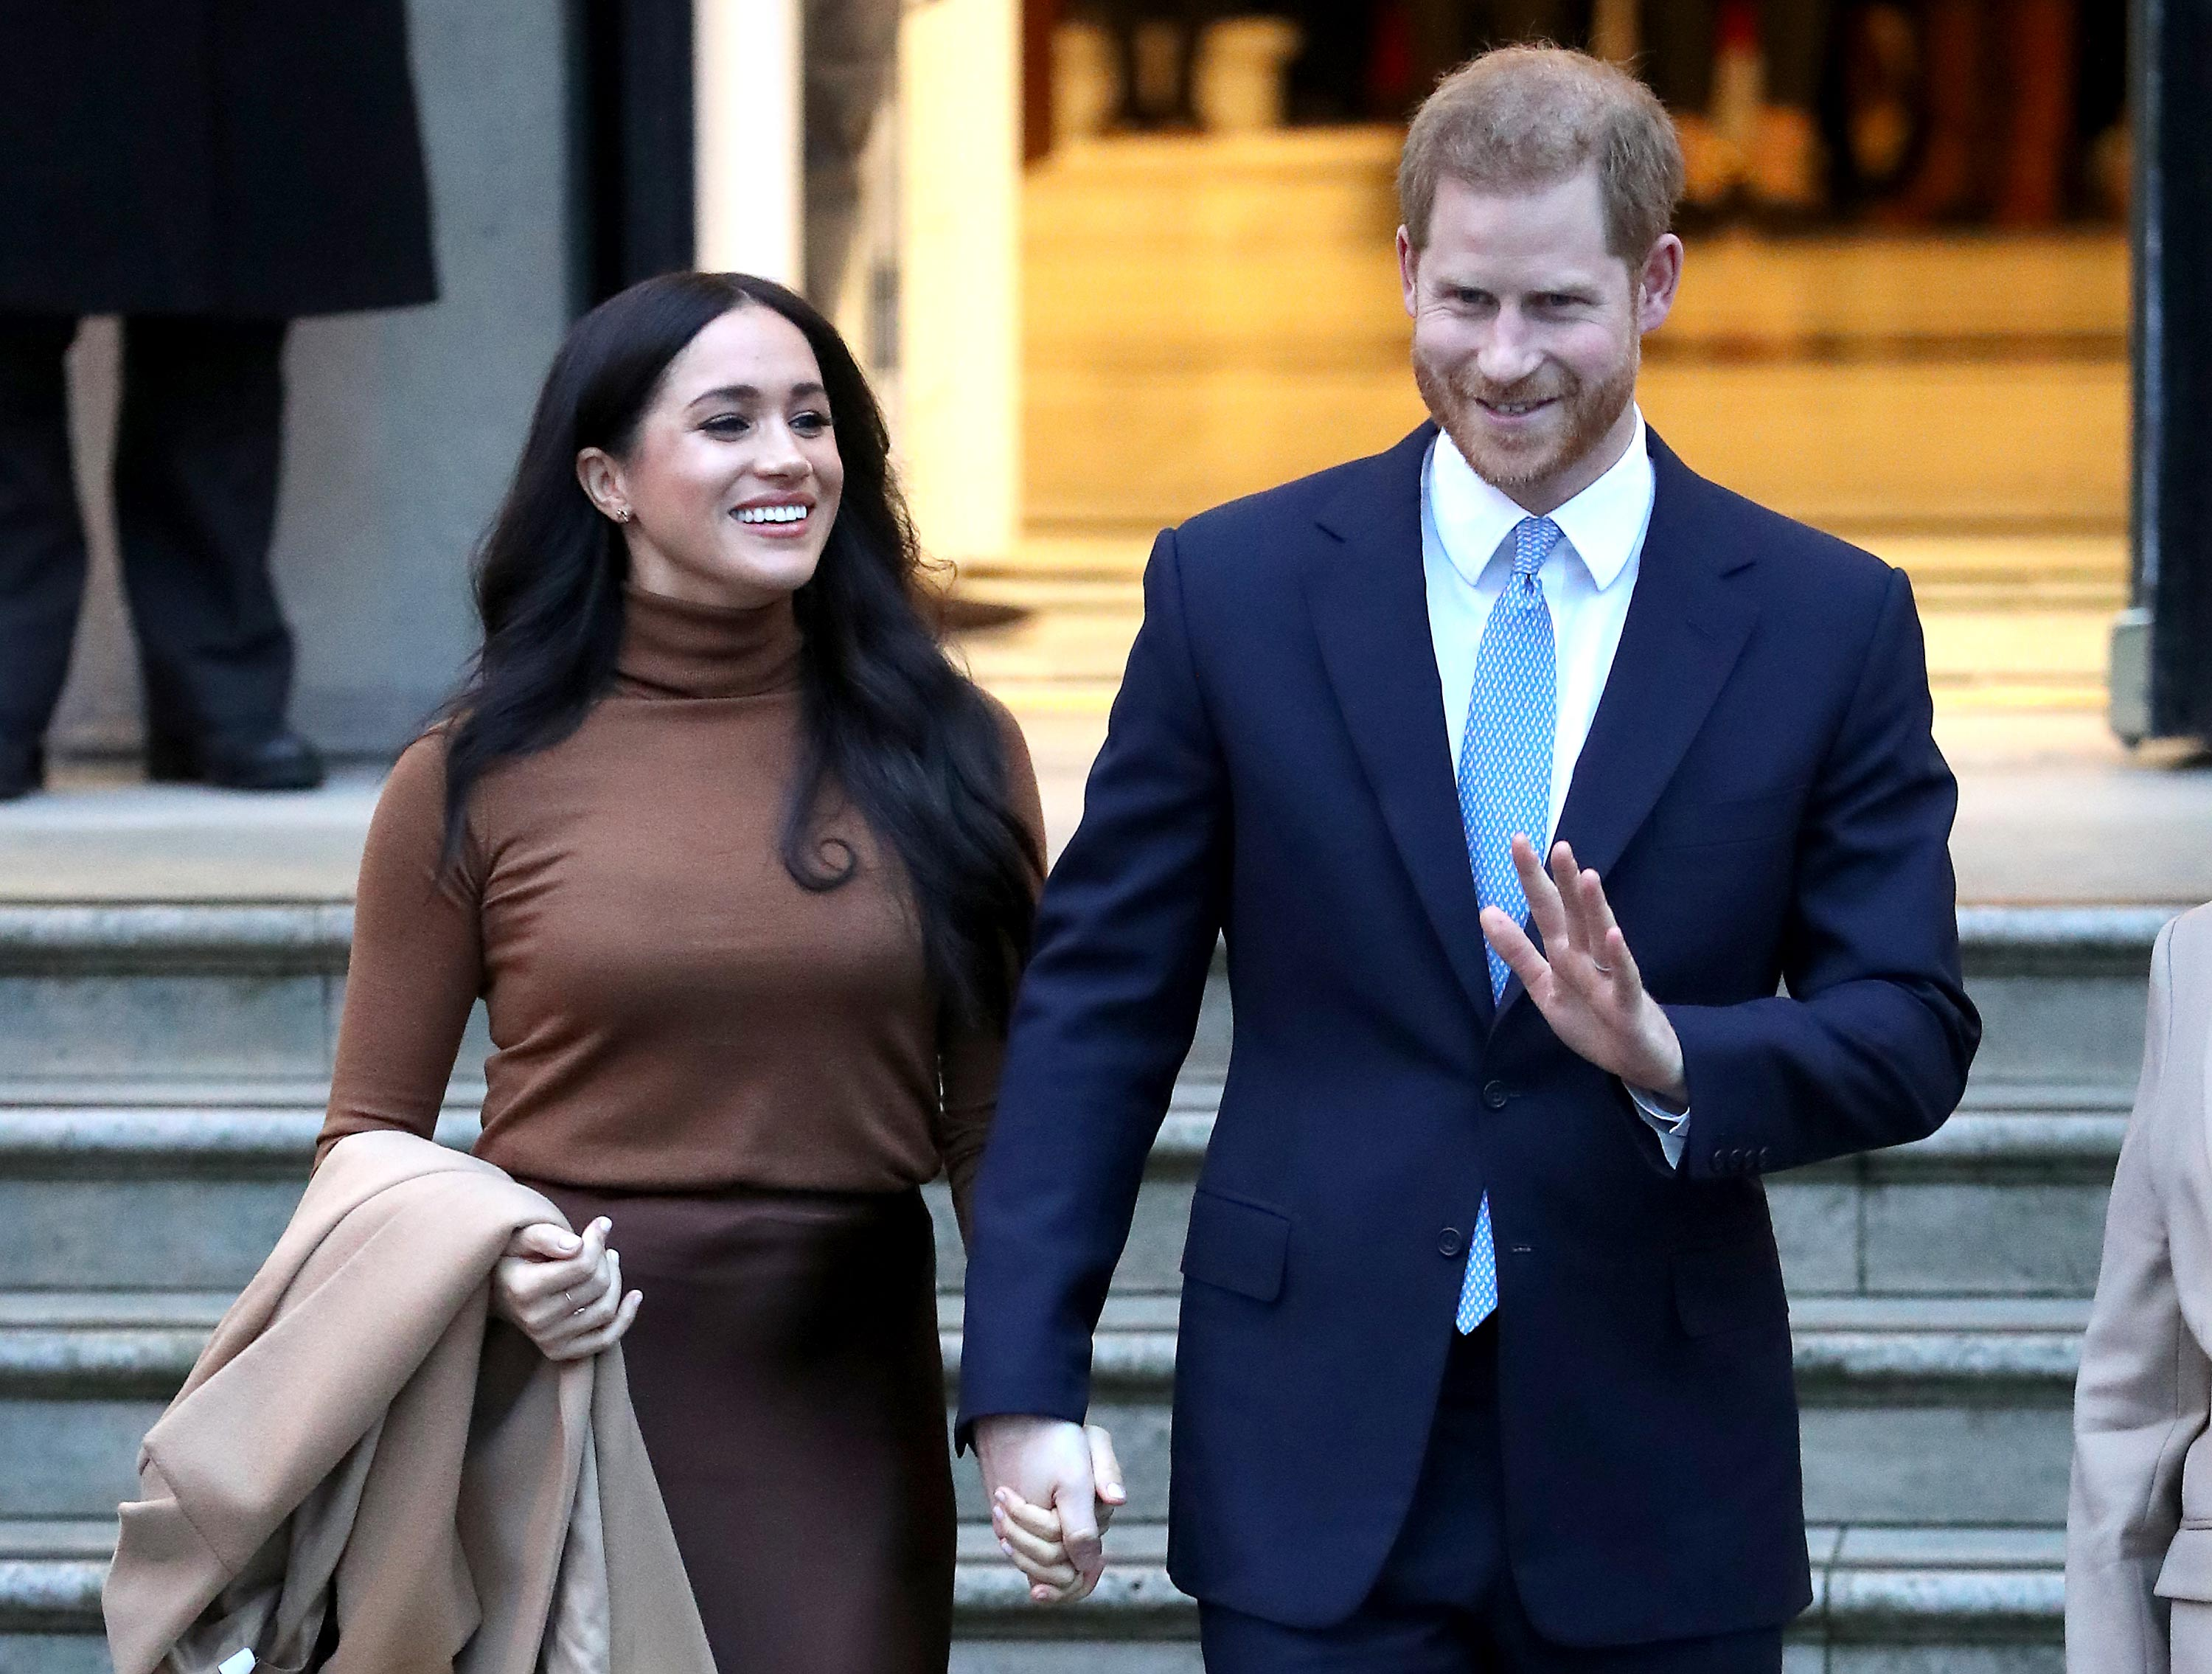 Prince Harry, Duke of Sussex and Meghan, Duchess of Sussex depart Canada House in London on January 7, 2020.